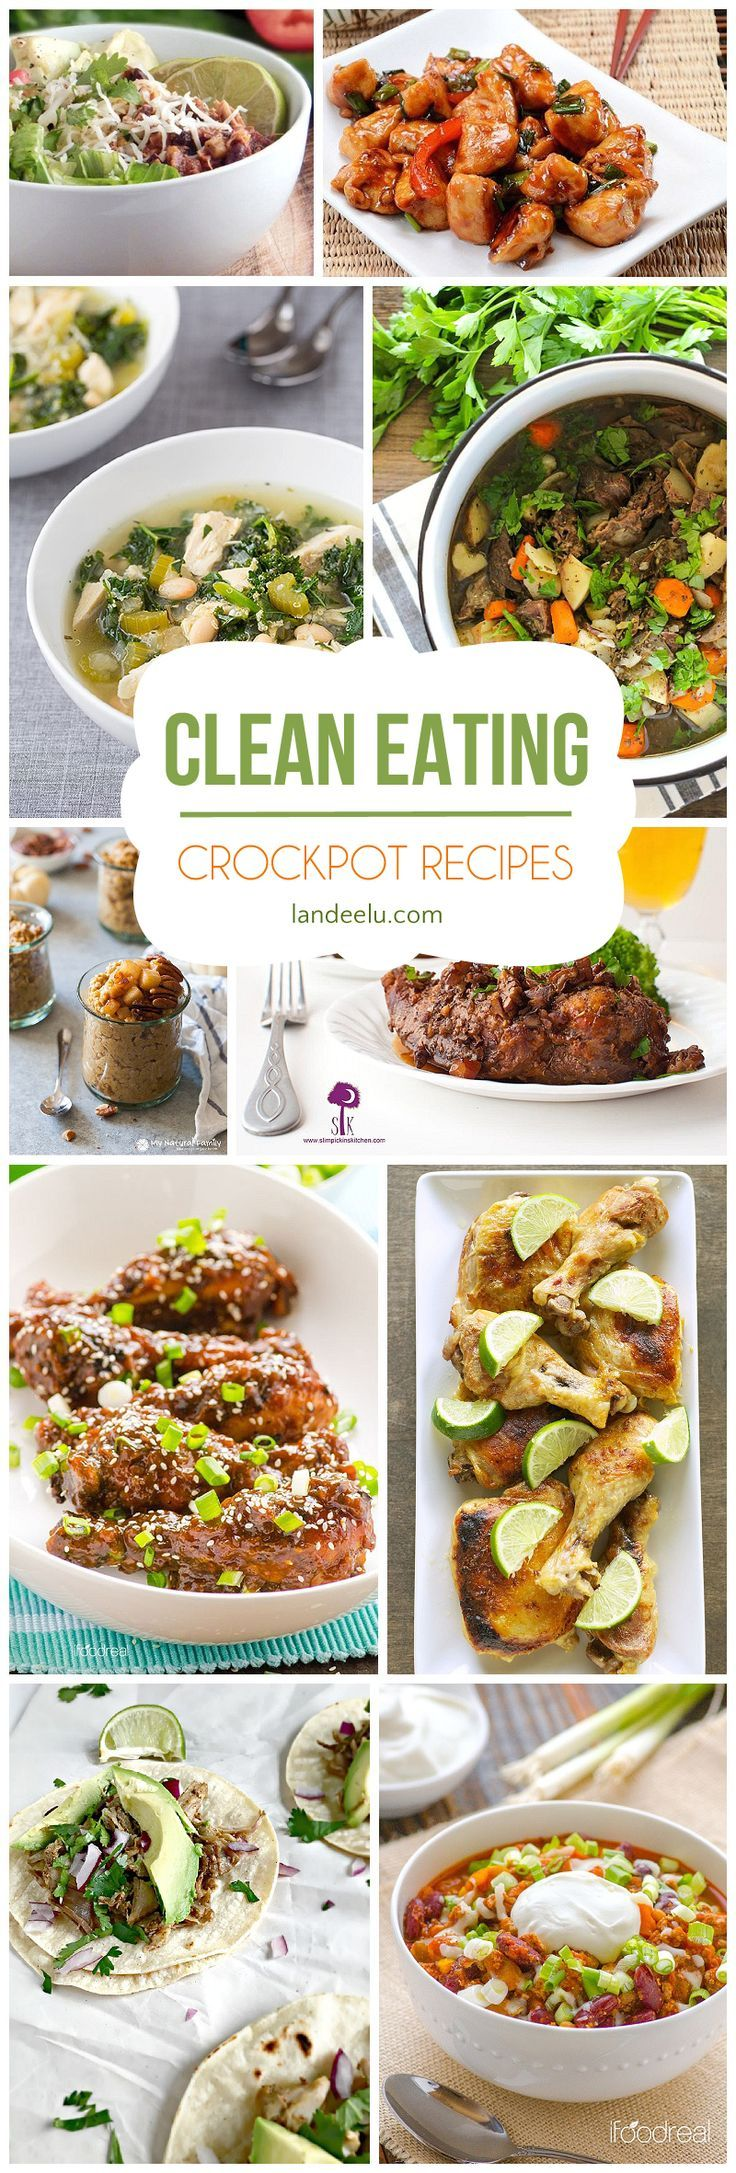 Clean Eating Crockpot Recipes